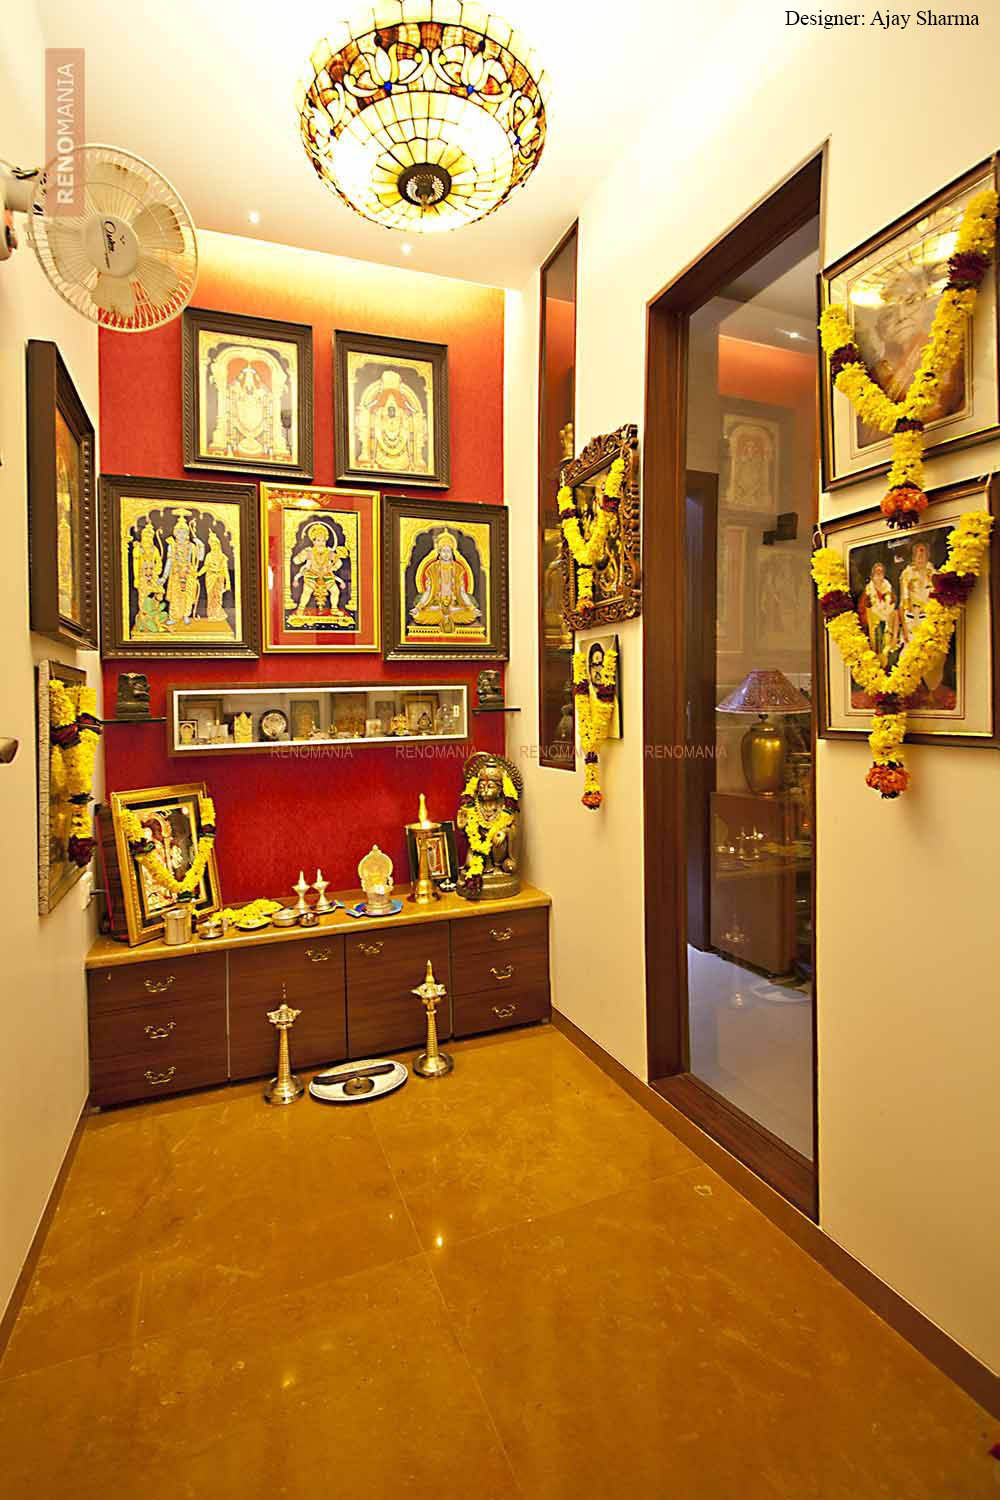 Puja Room Design: This Navratri Design Your PUJA ROOM